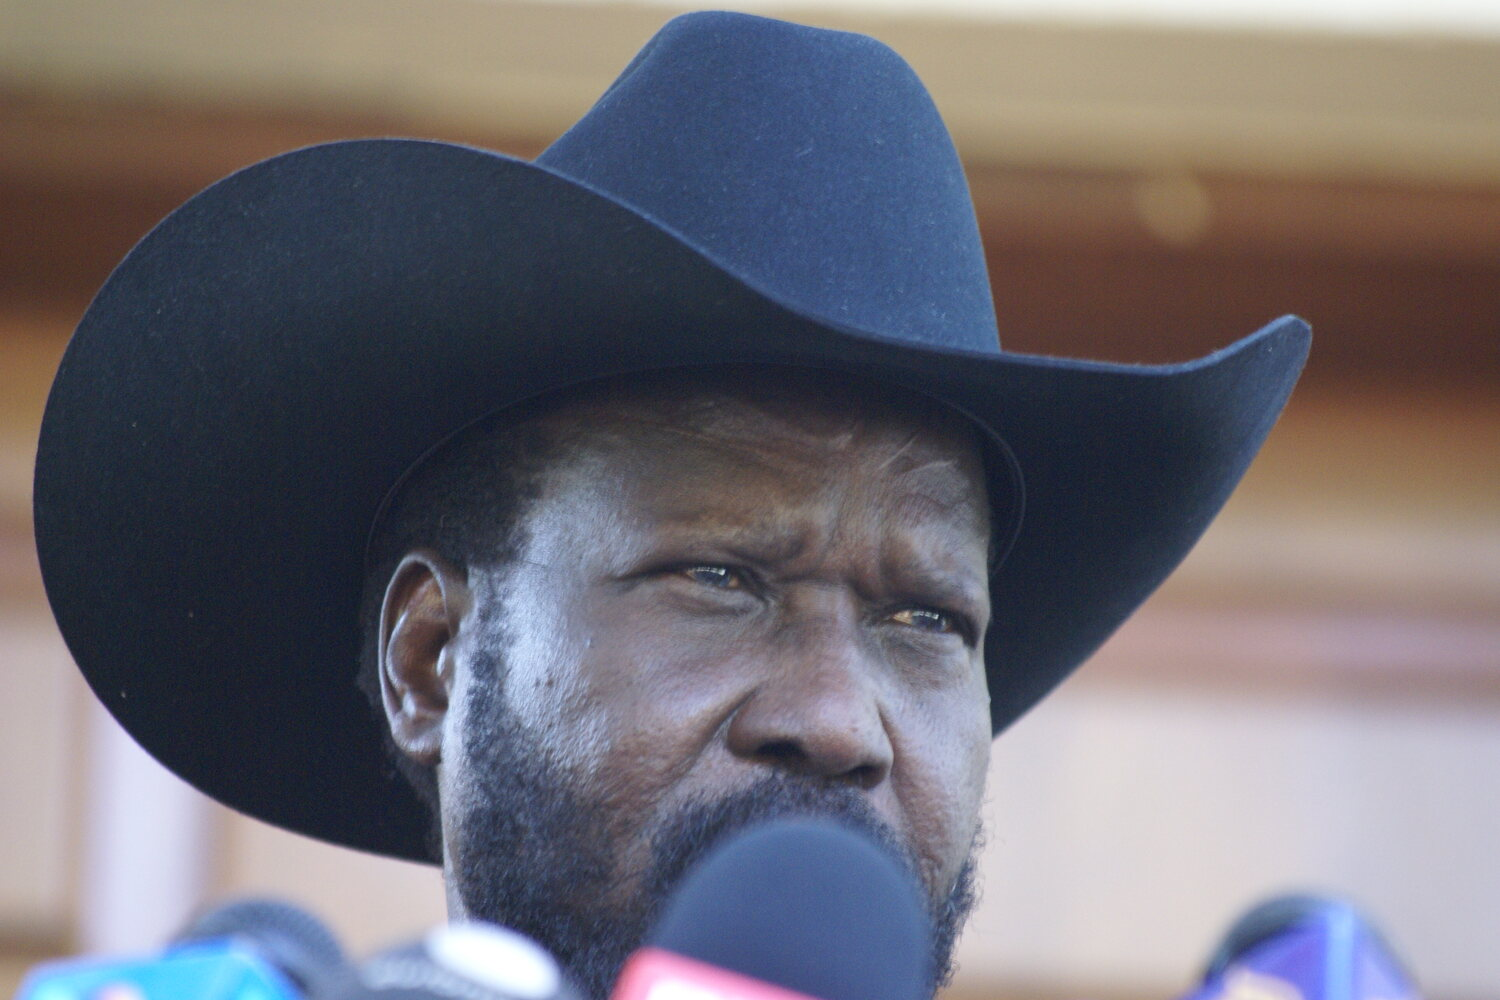 South Sudanese President Salva Kiir in 2011